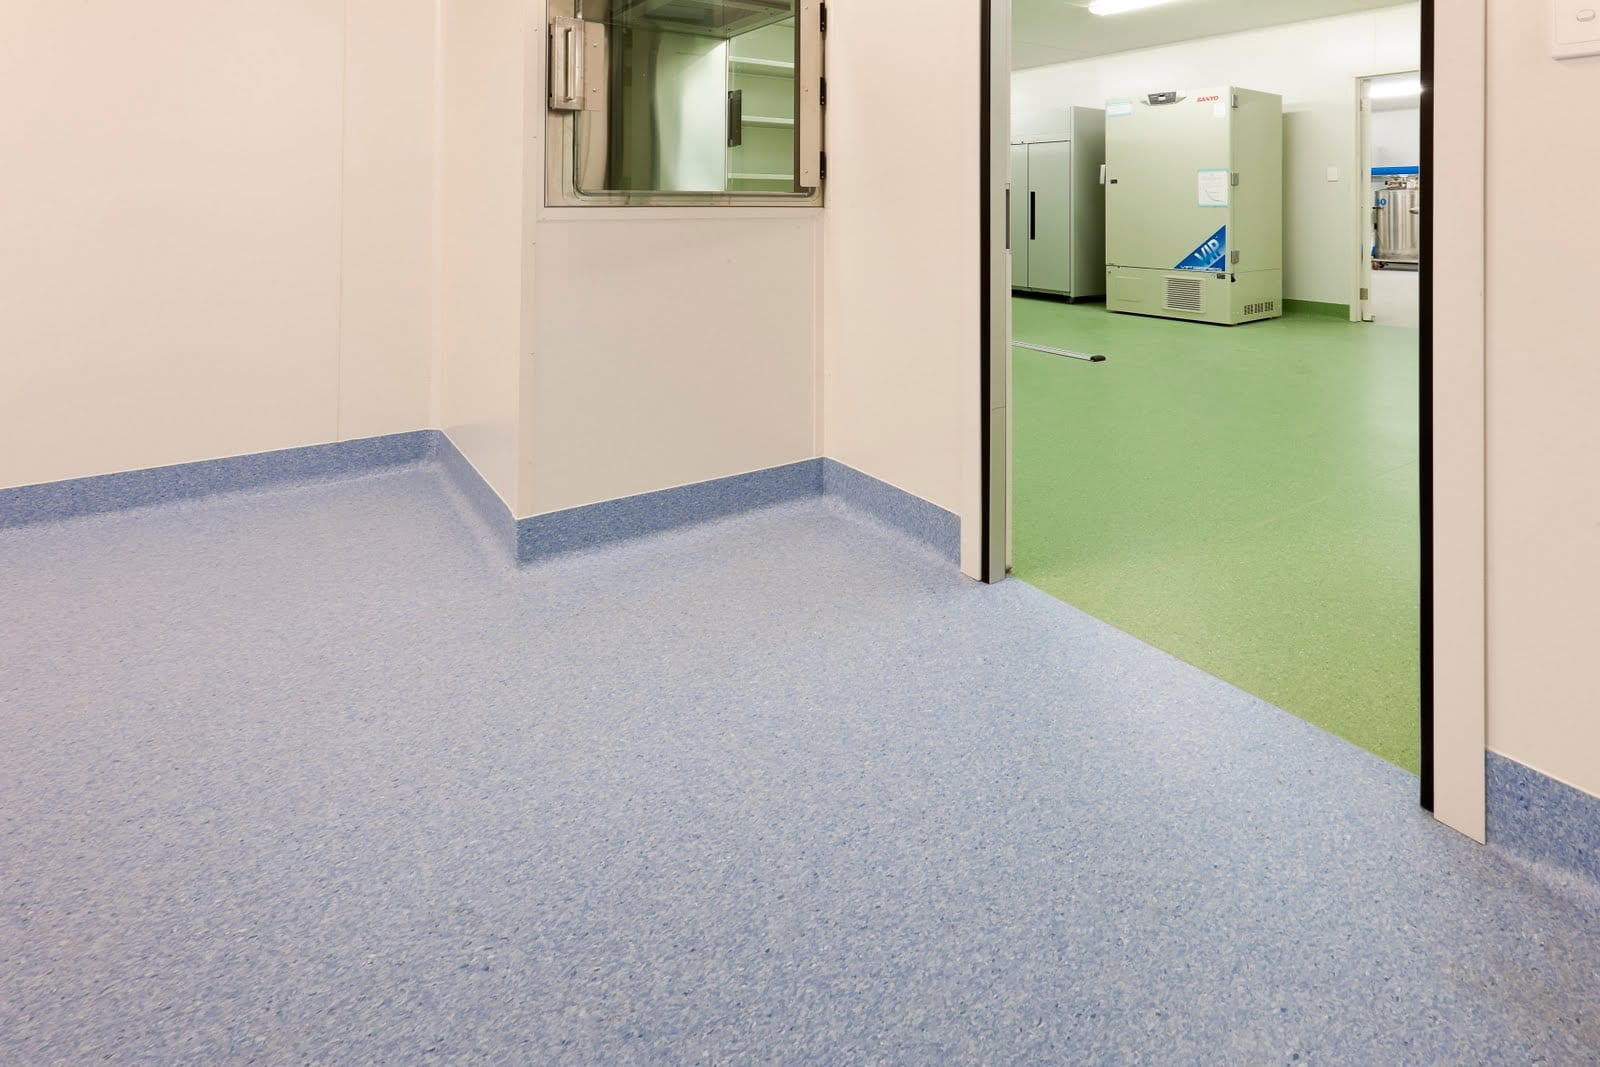 commercial flooring kingsteignton